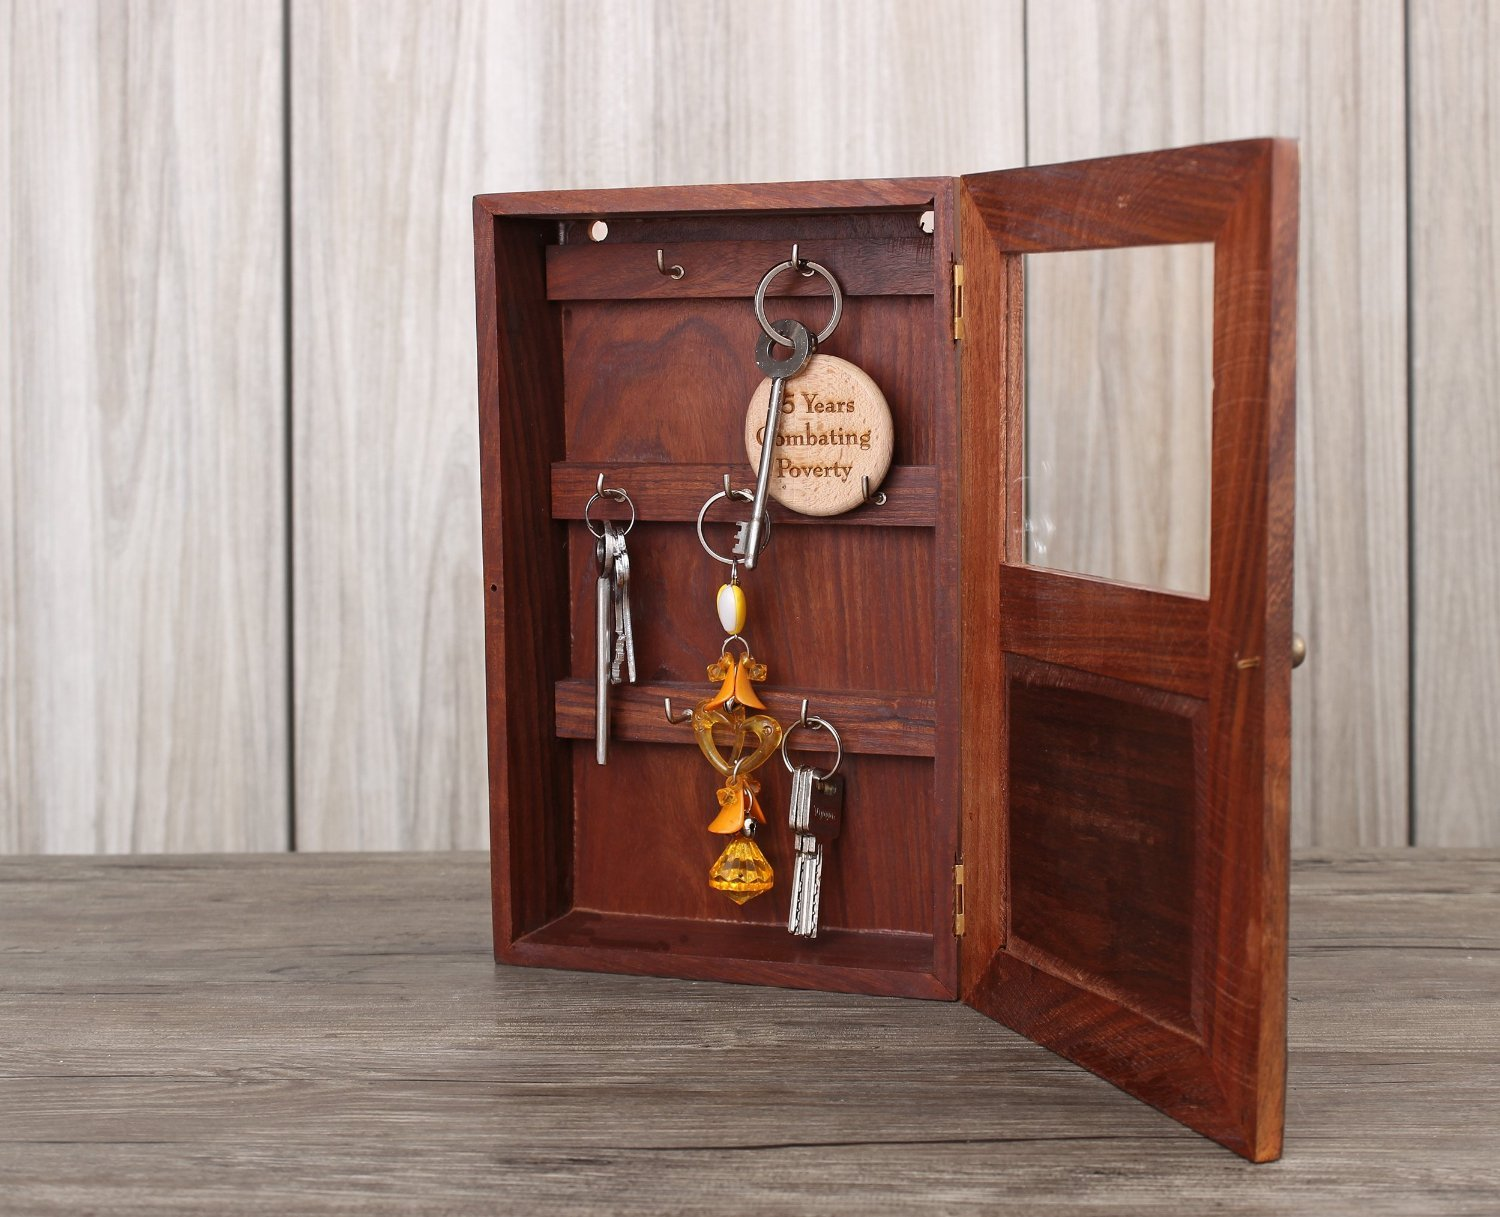 Attractive Amazon.com : Handmade Decorative Wooden Wall Mounted Key Cabinet With Glass  Panel Door U0026 Elephant Carvings : Office Products